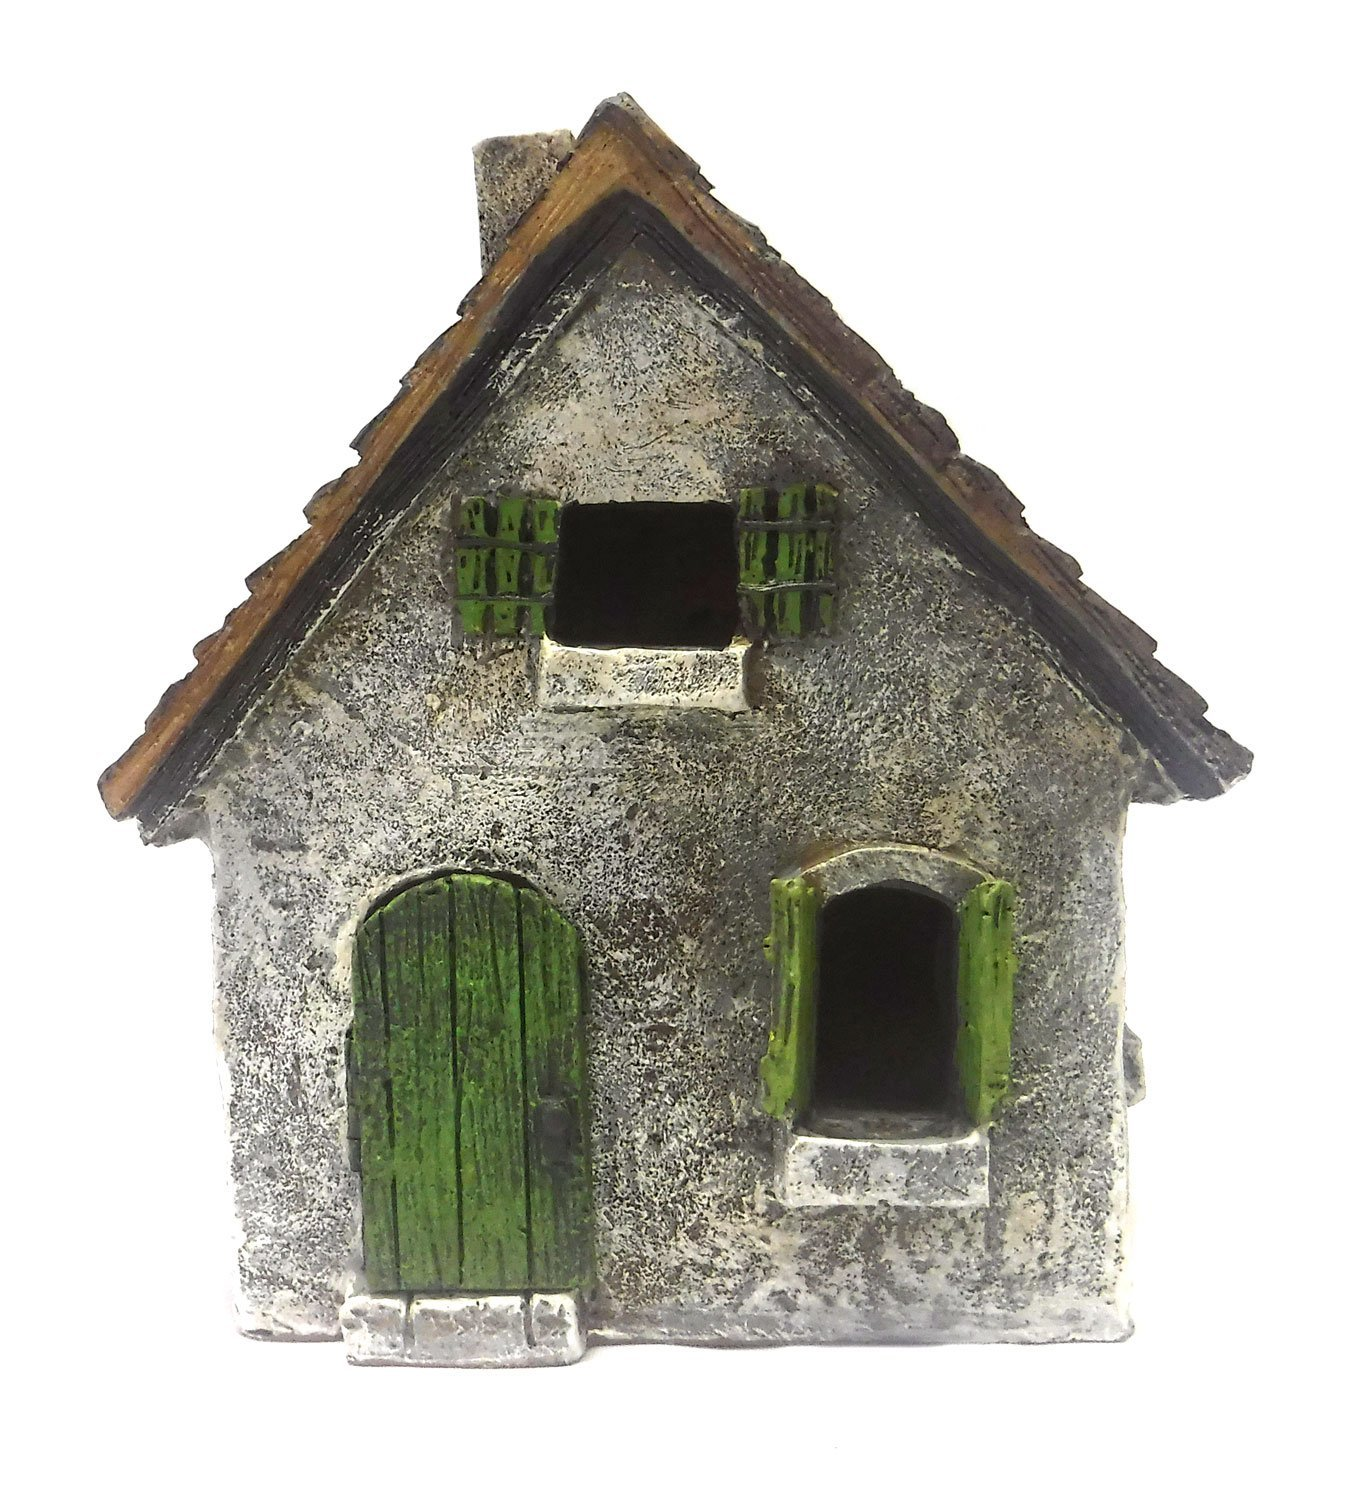 Fairy Garden House-Morning Glory Cottage with Swinging Door by WFG (Image #1)